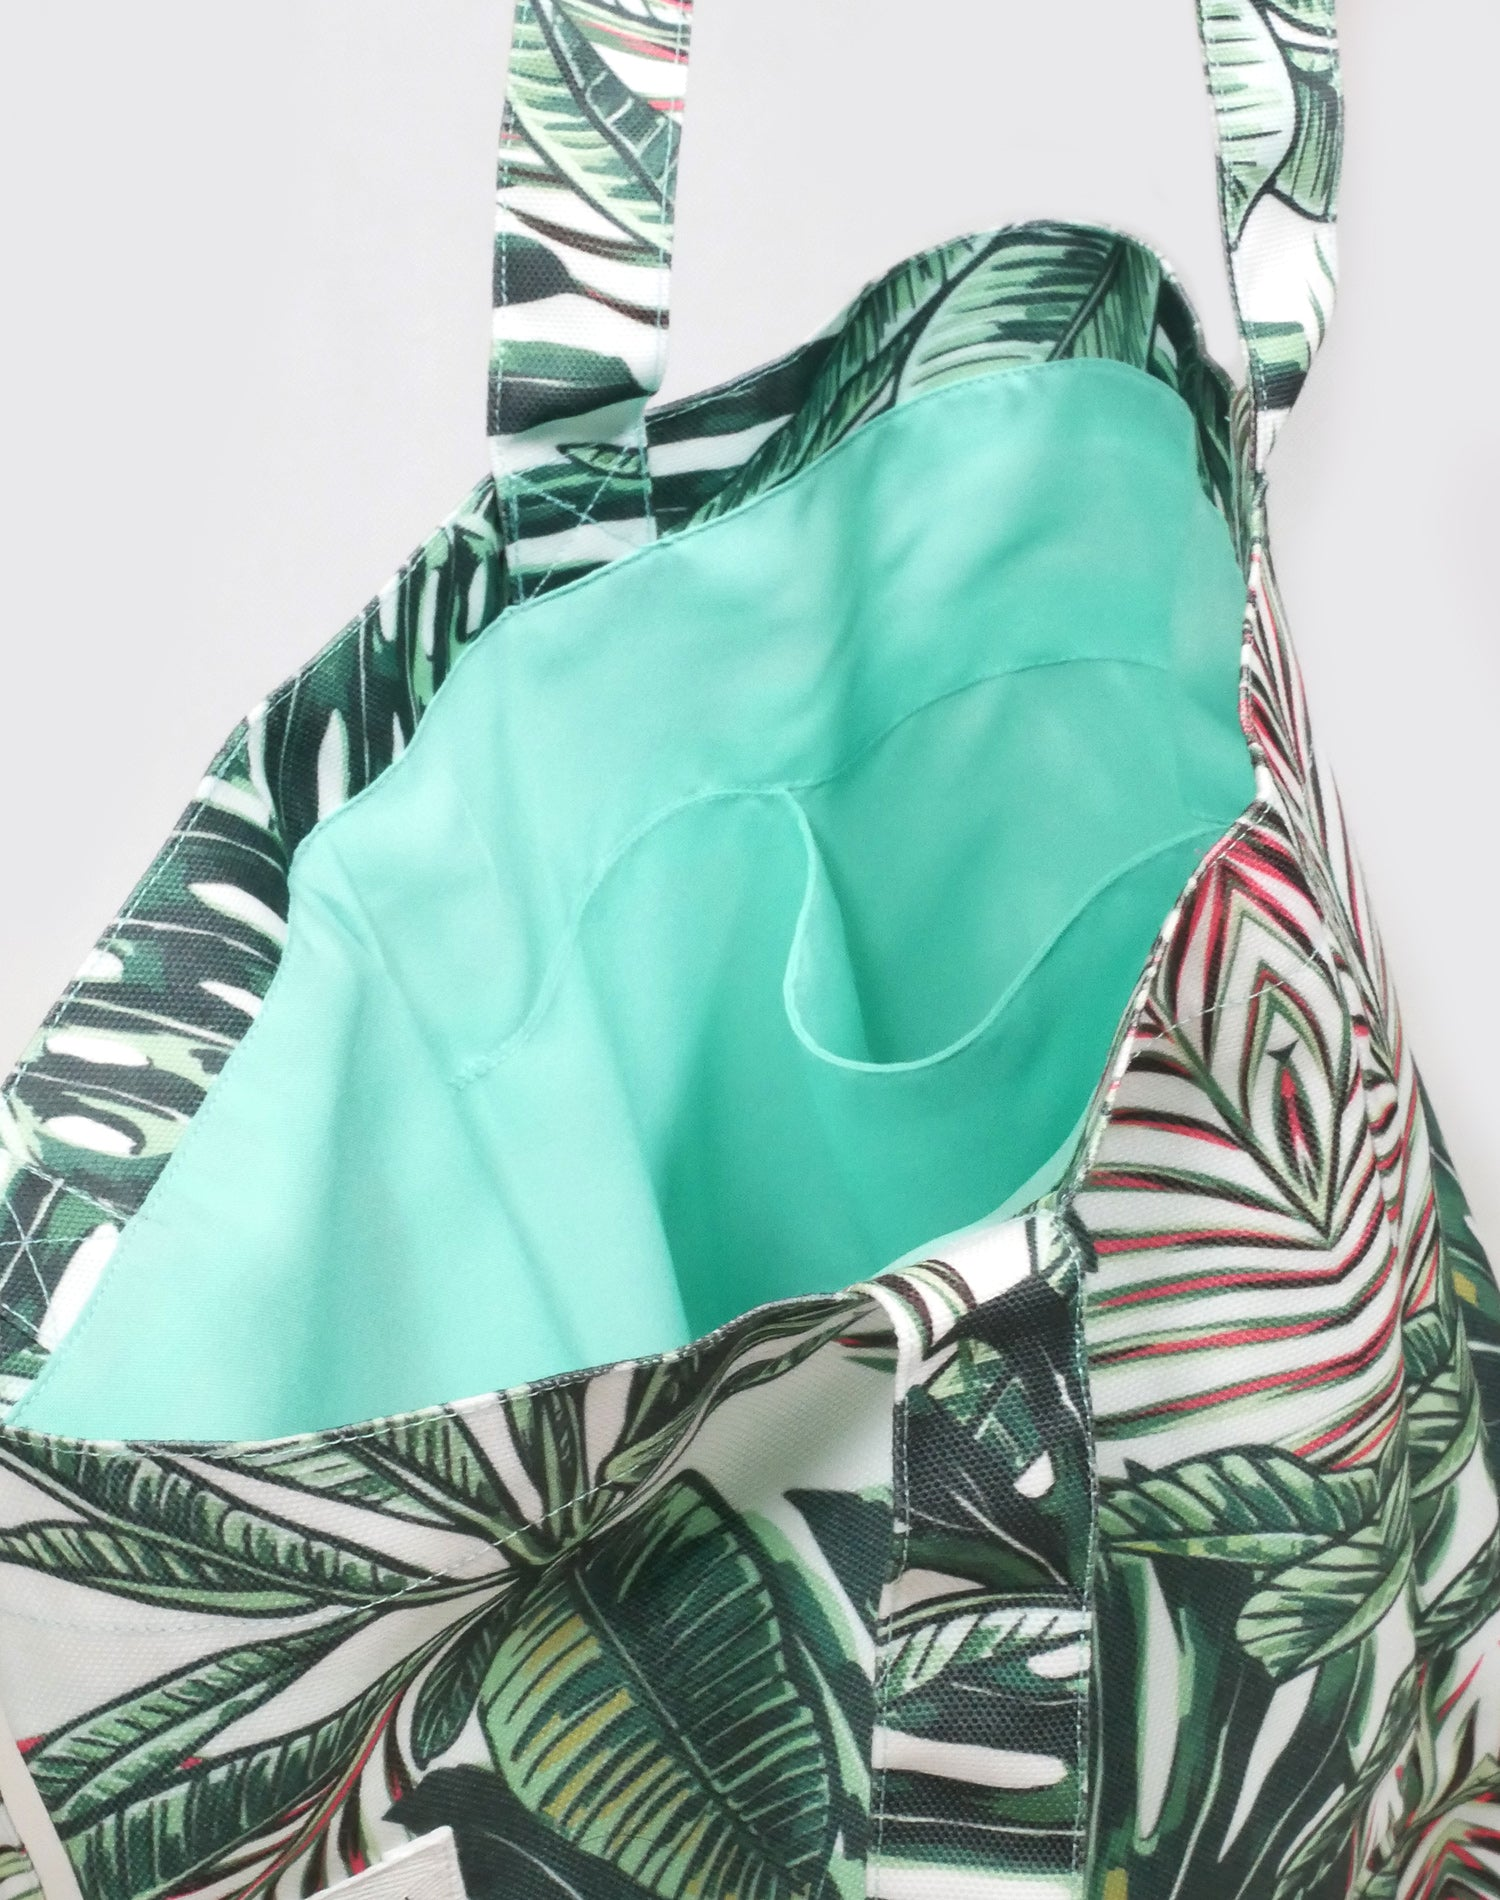 Tropical Escape Canvas Tote Bag.熱帶度假帆布側背袋